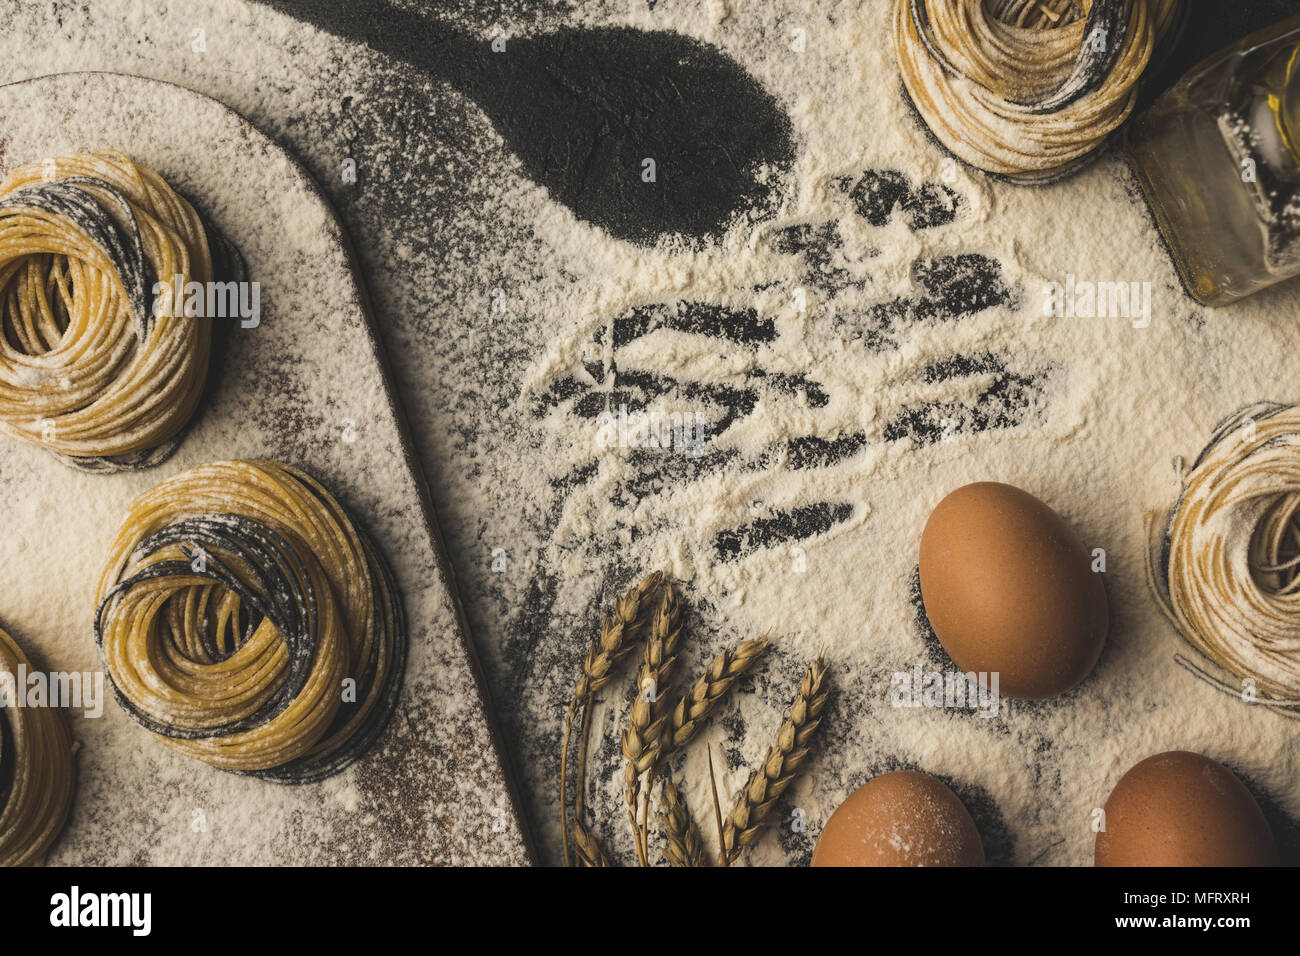 raw pasta and ingredients composition - Stock Image